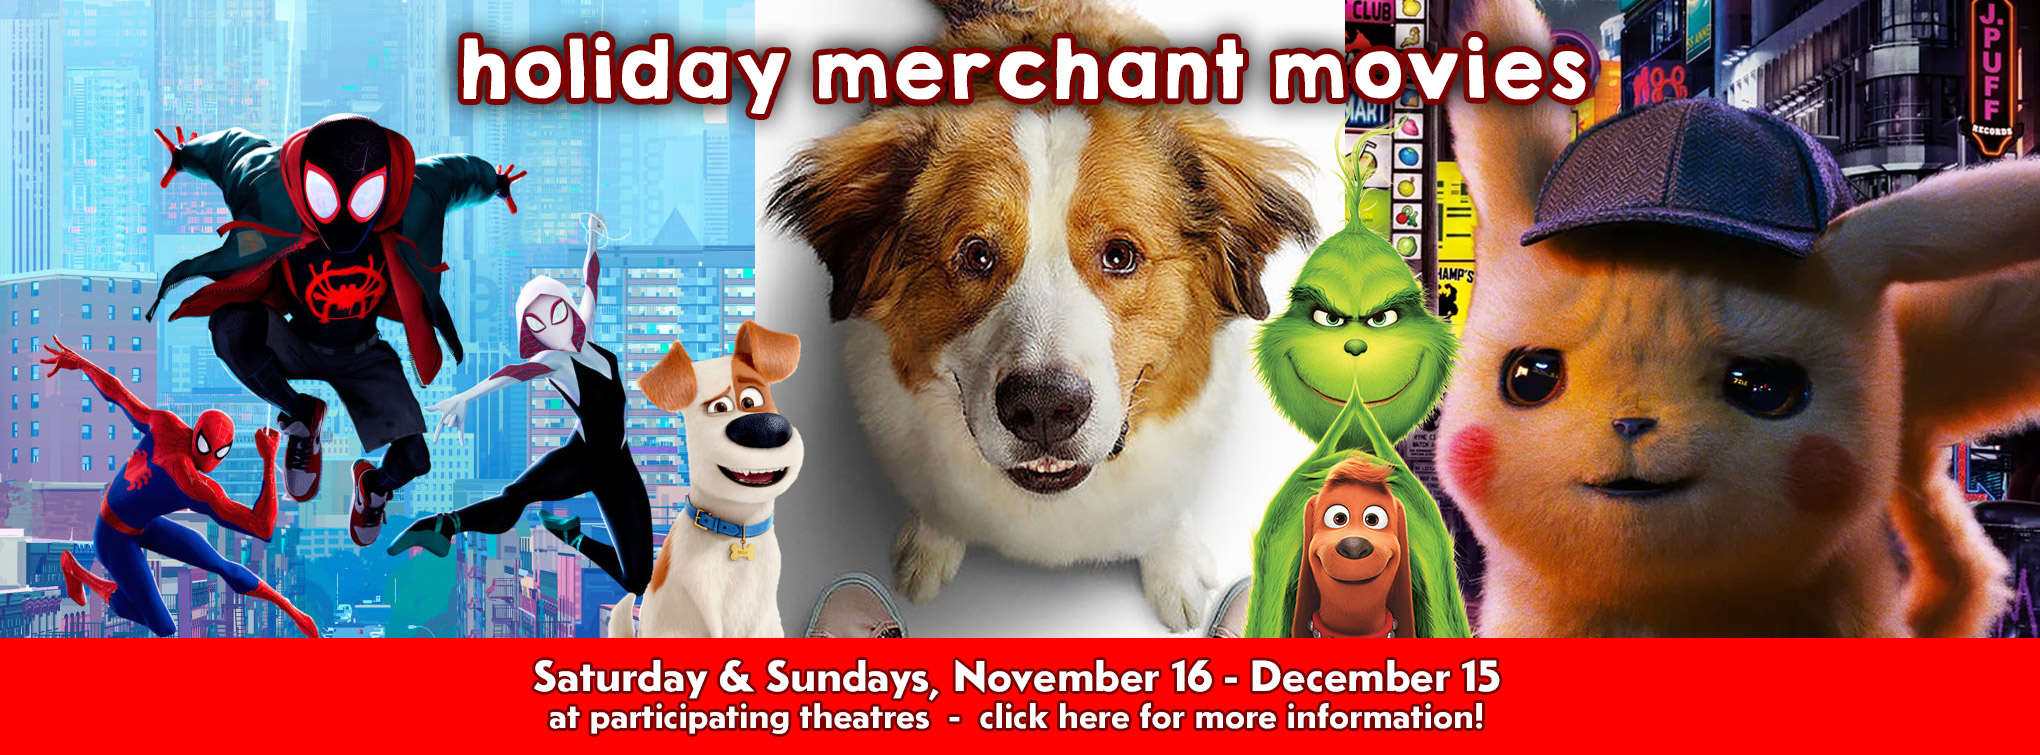 Slider image for Holiday Merchant Movies